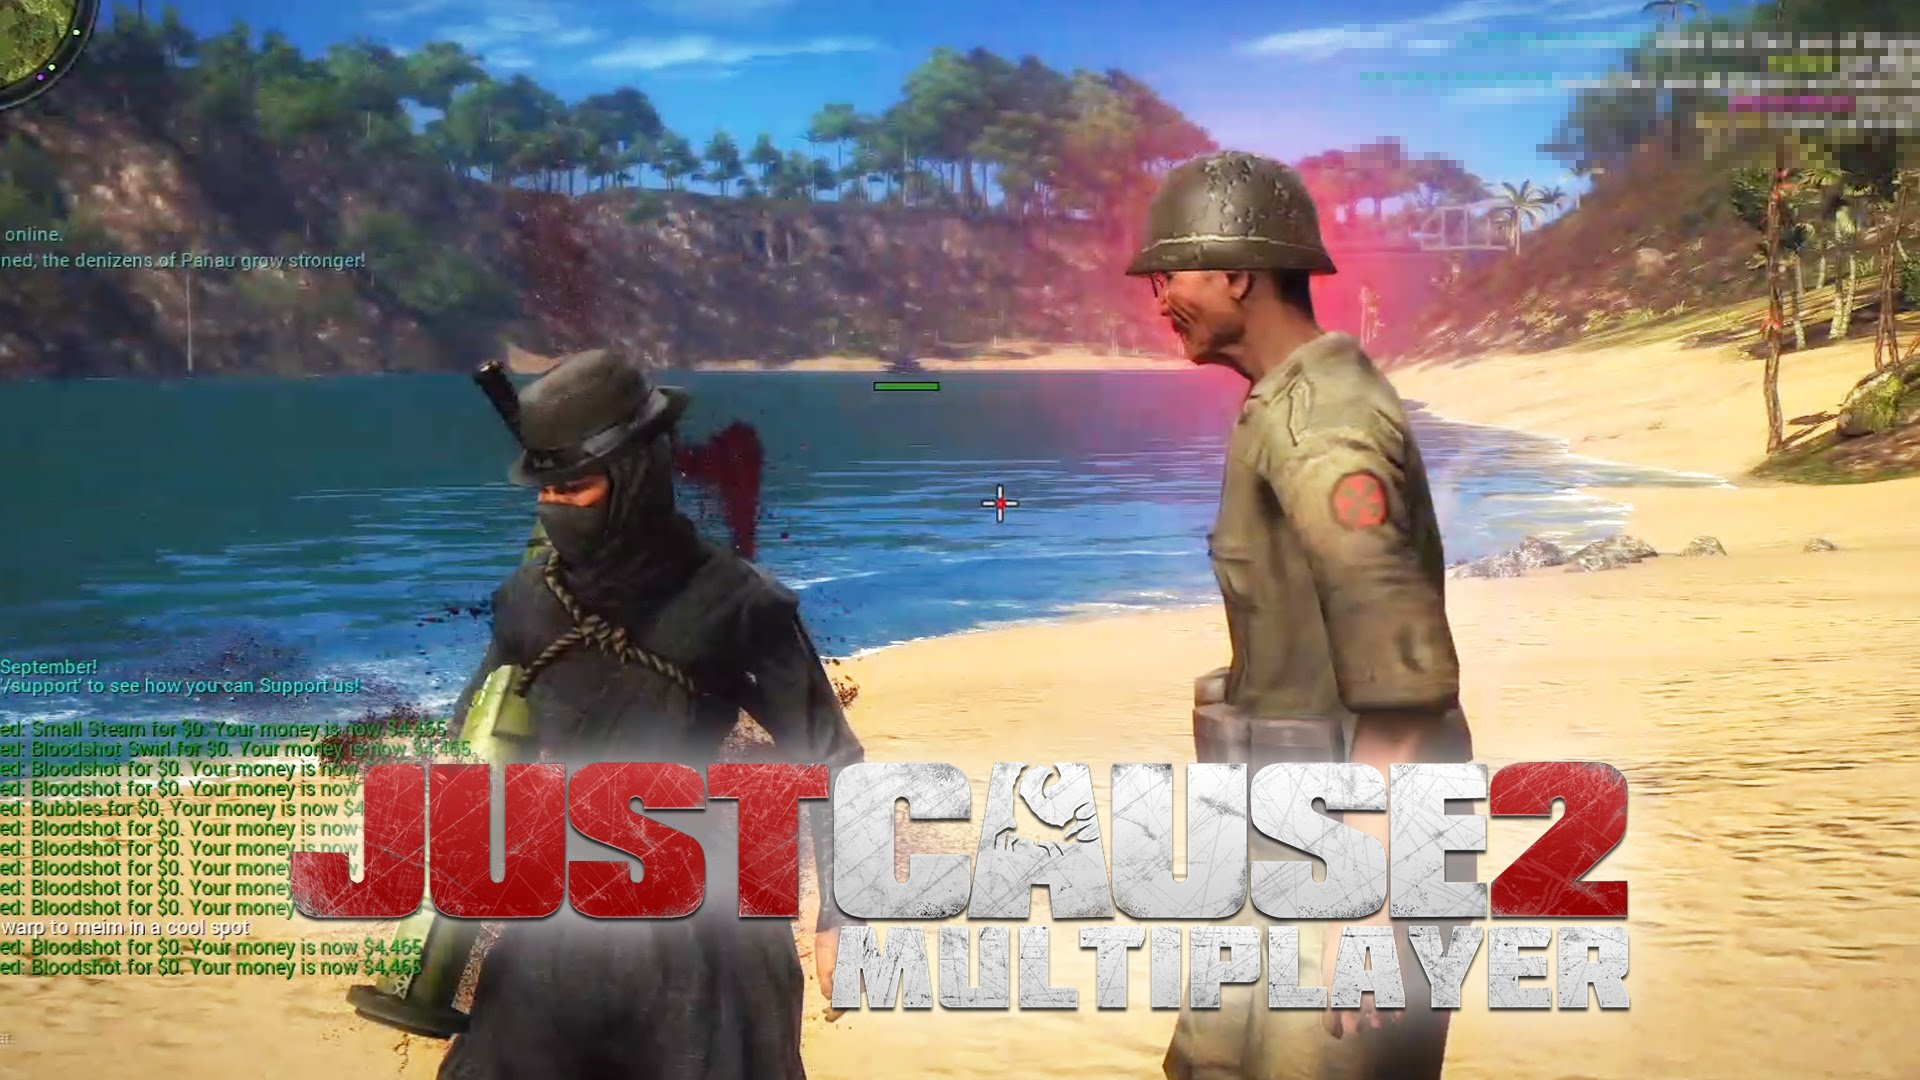 【JC2-MP】Just Cause 2 Multiplayer